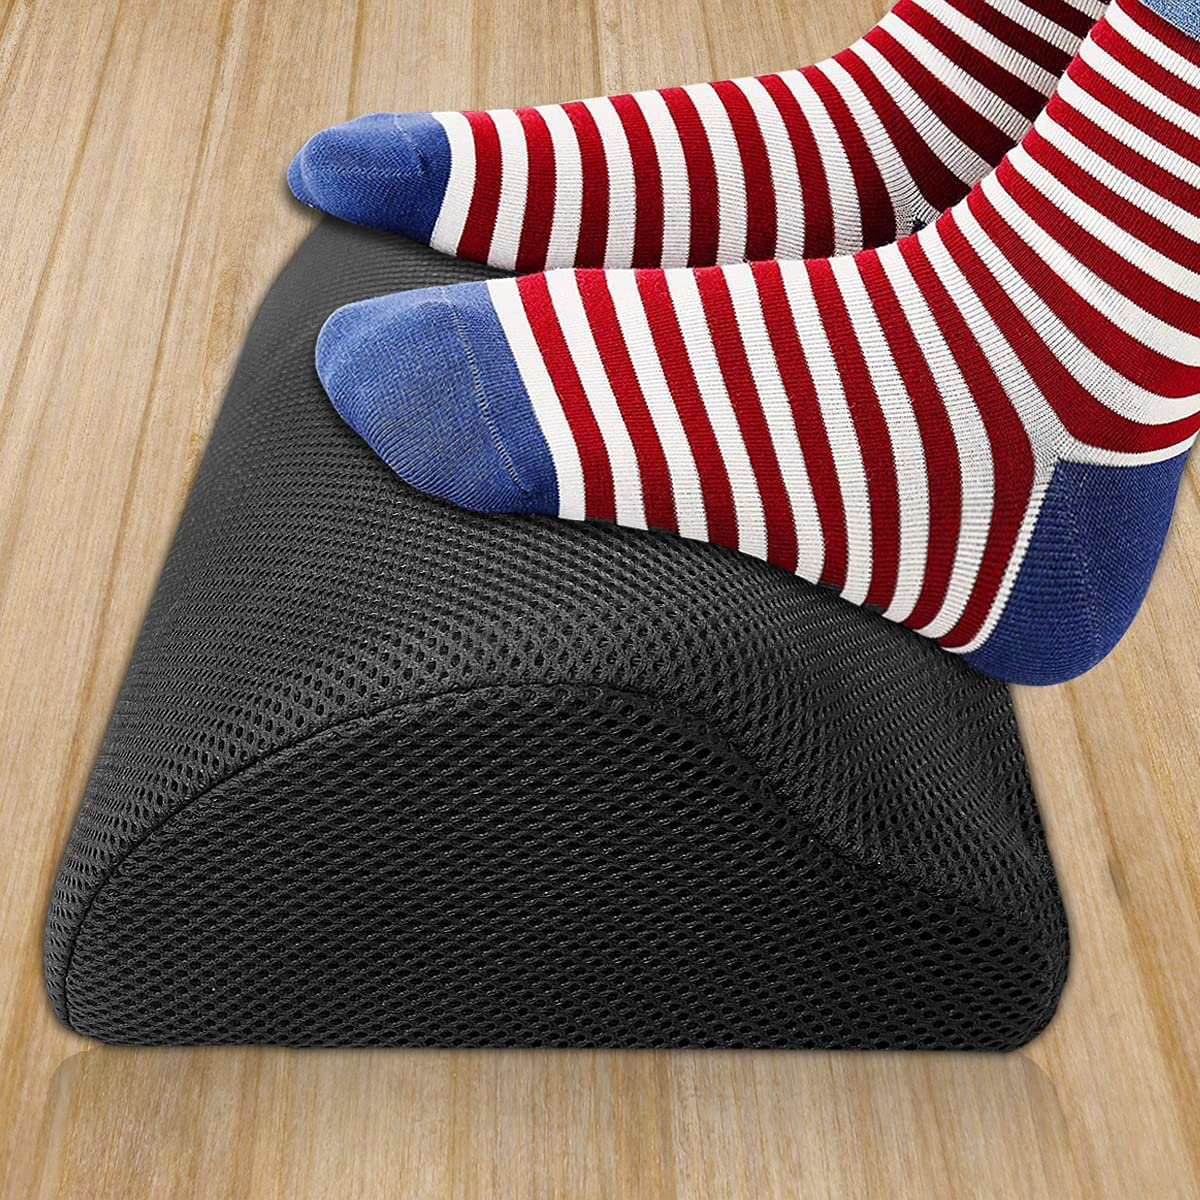 Tucson Mall Balkwan Foot Rest for Under Desk Relieve A surprise price is realized Knee to Back Lumbar